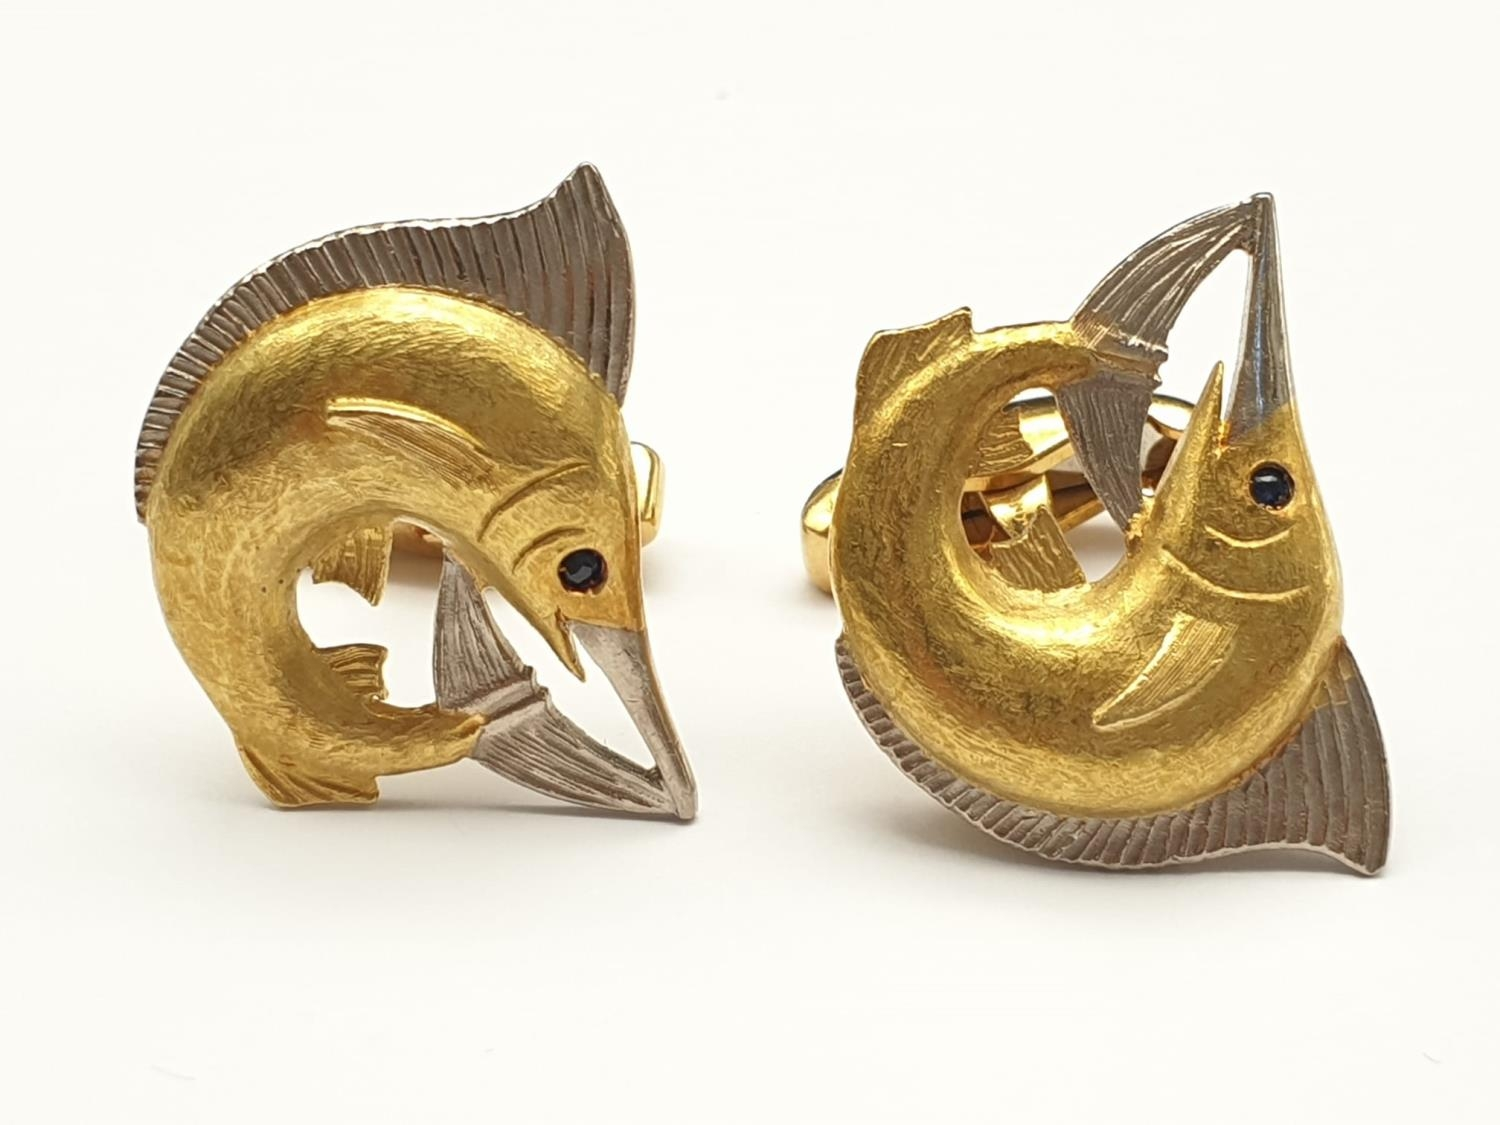 Exquisite Pair of Hand-Made 18K White and Yellow Gold Sailfish Cufflinks with Sapphire Stone Eyes.